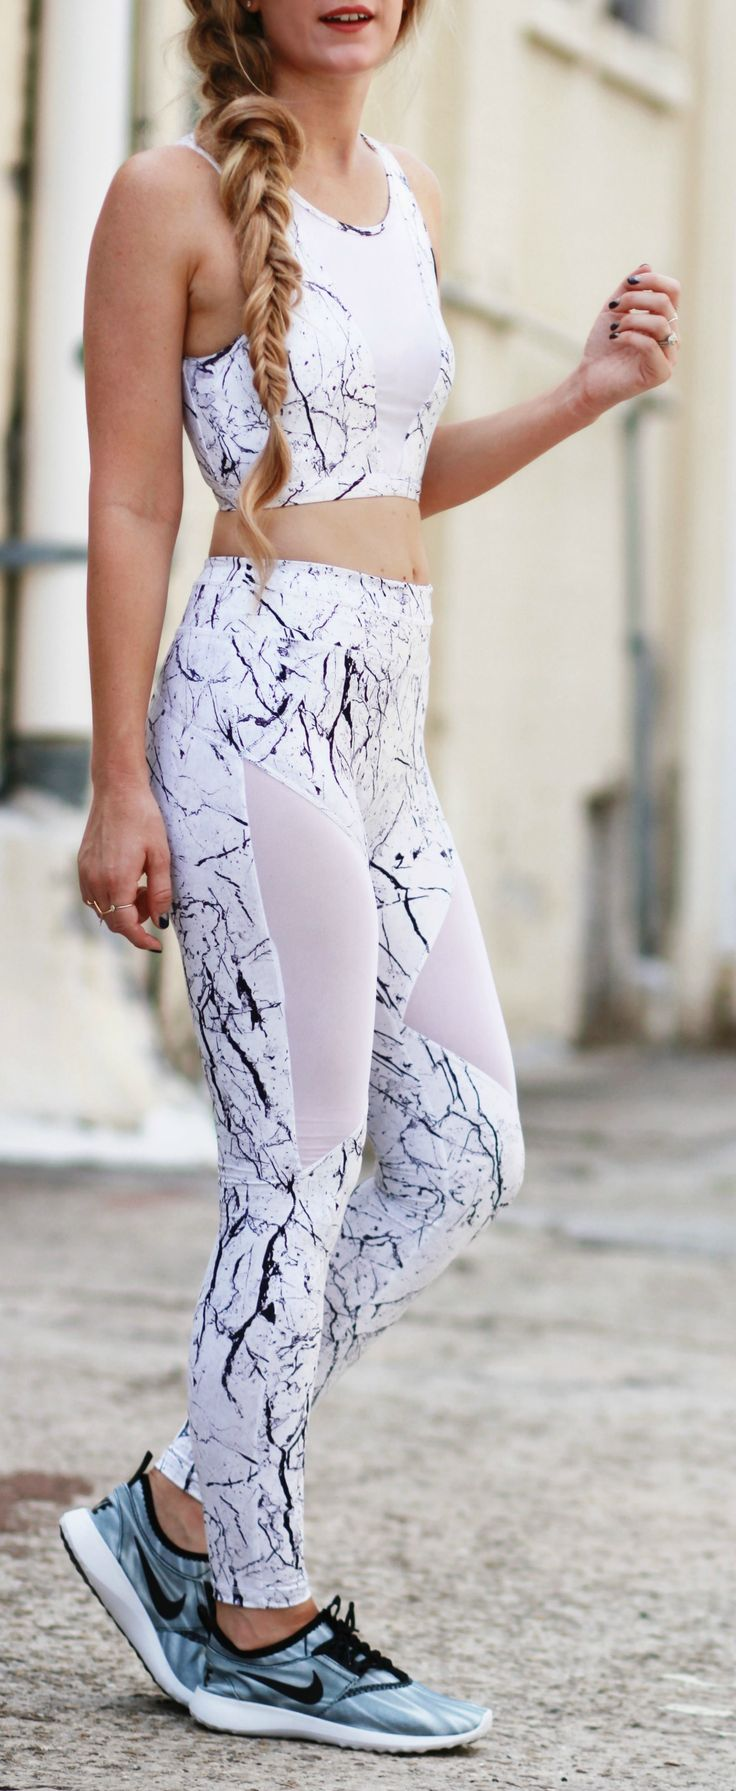 Cute work out outfit with Carbon 38 marble print leggings, sports bra, and hologram Nikes